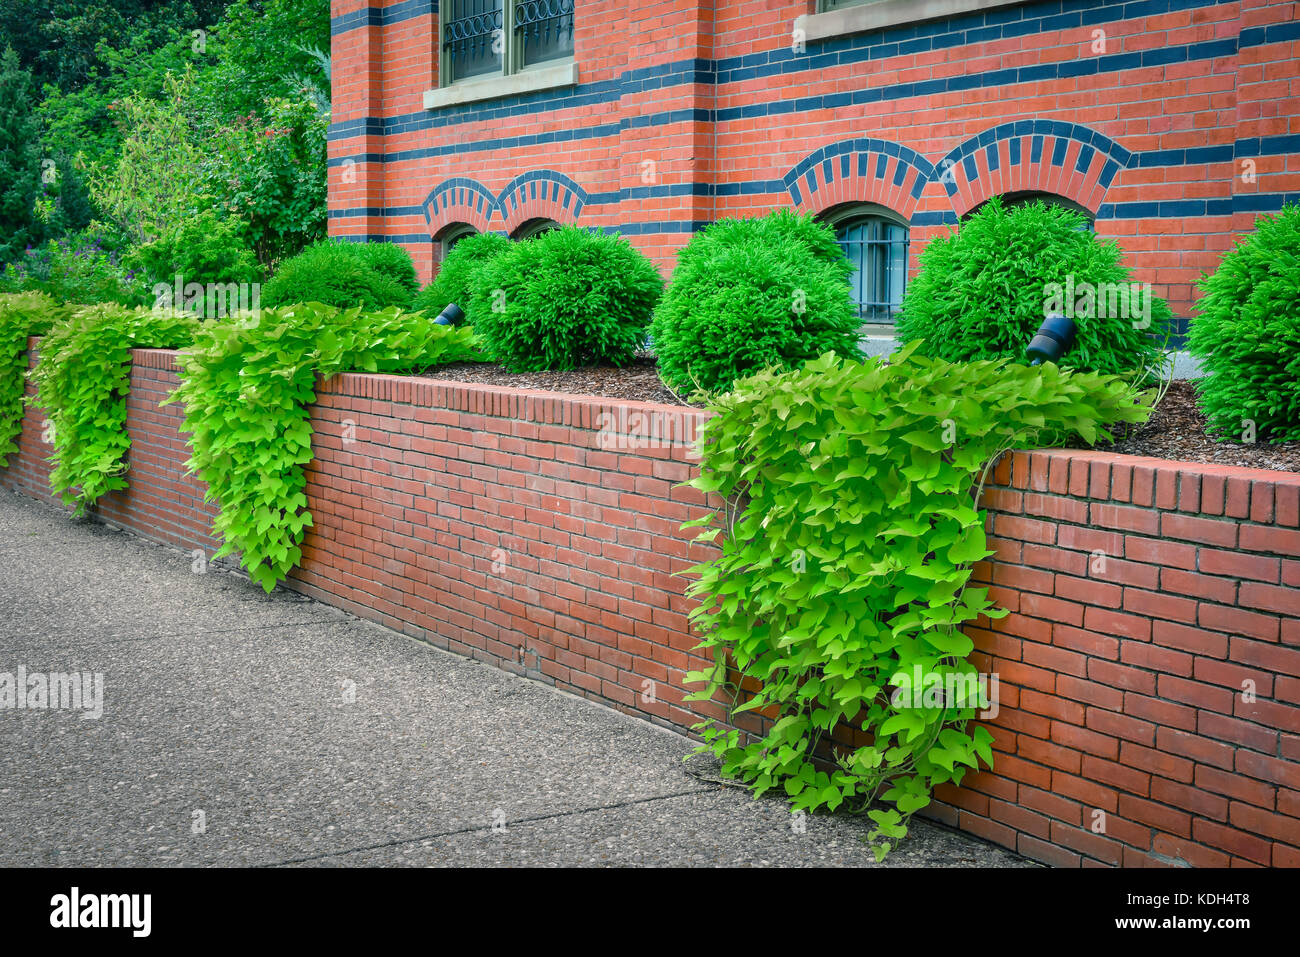 Ivy climbs down the red brick walls surrounding the Smithsonian's Arts and Industries Buildings in Washington, - Stock Image